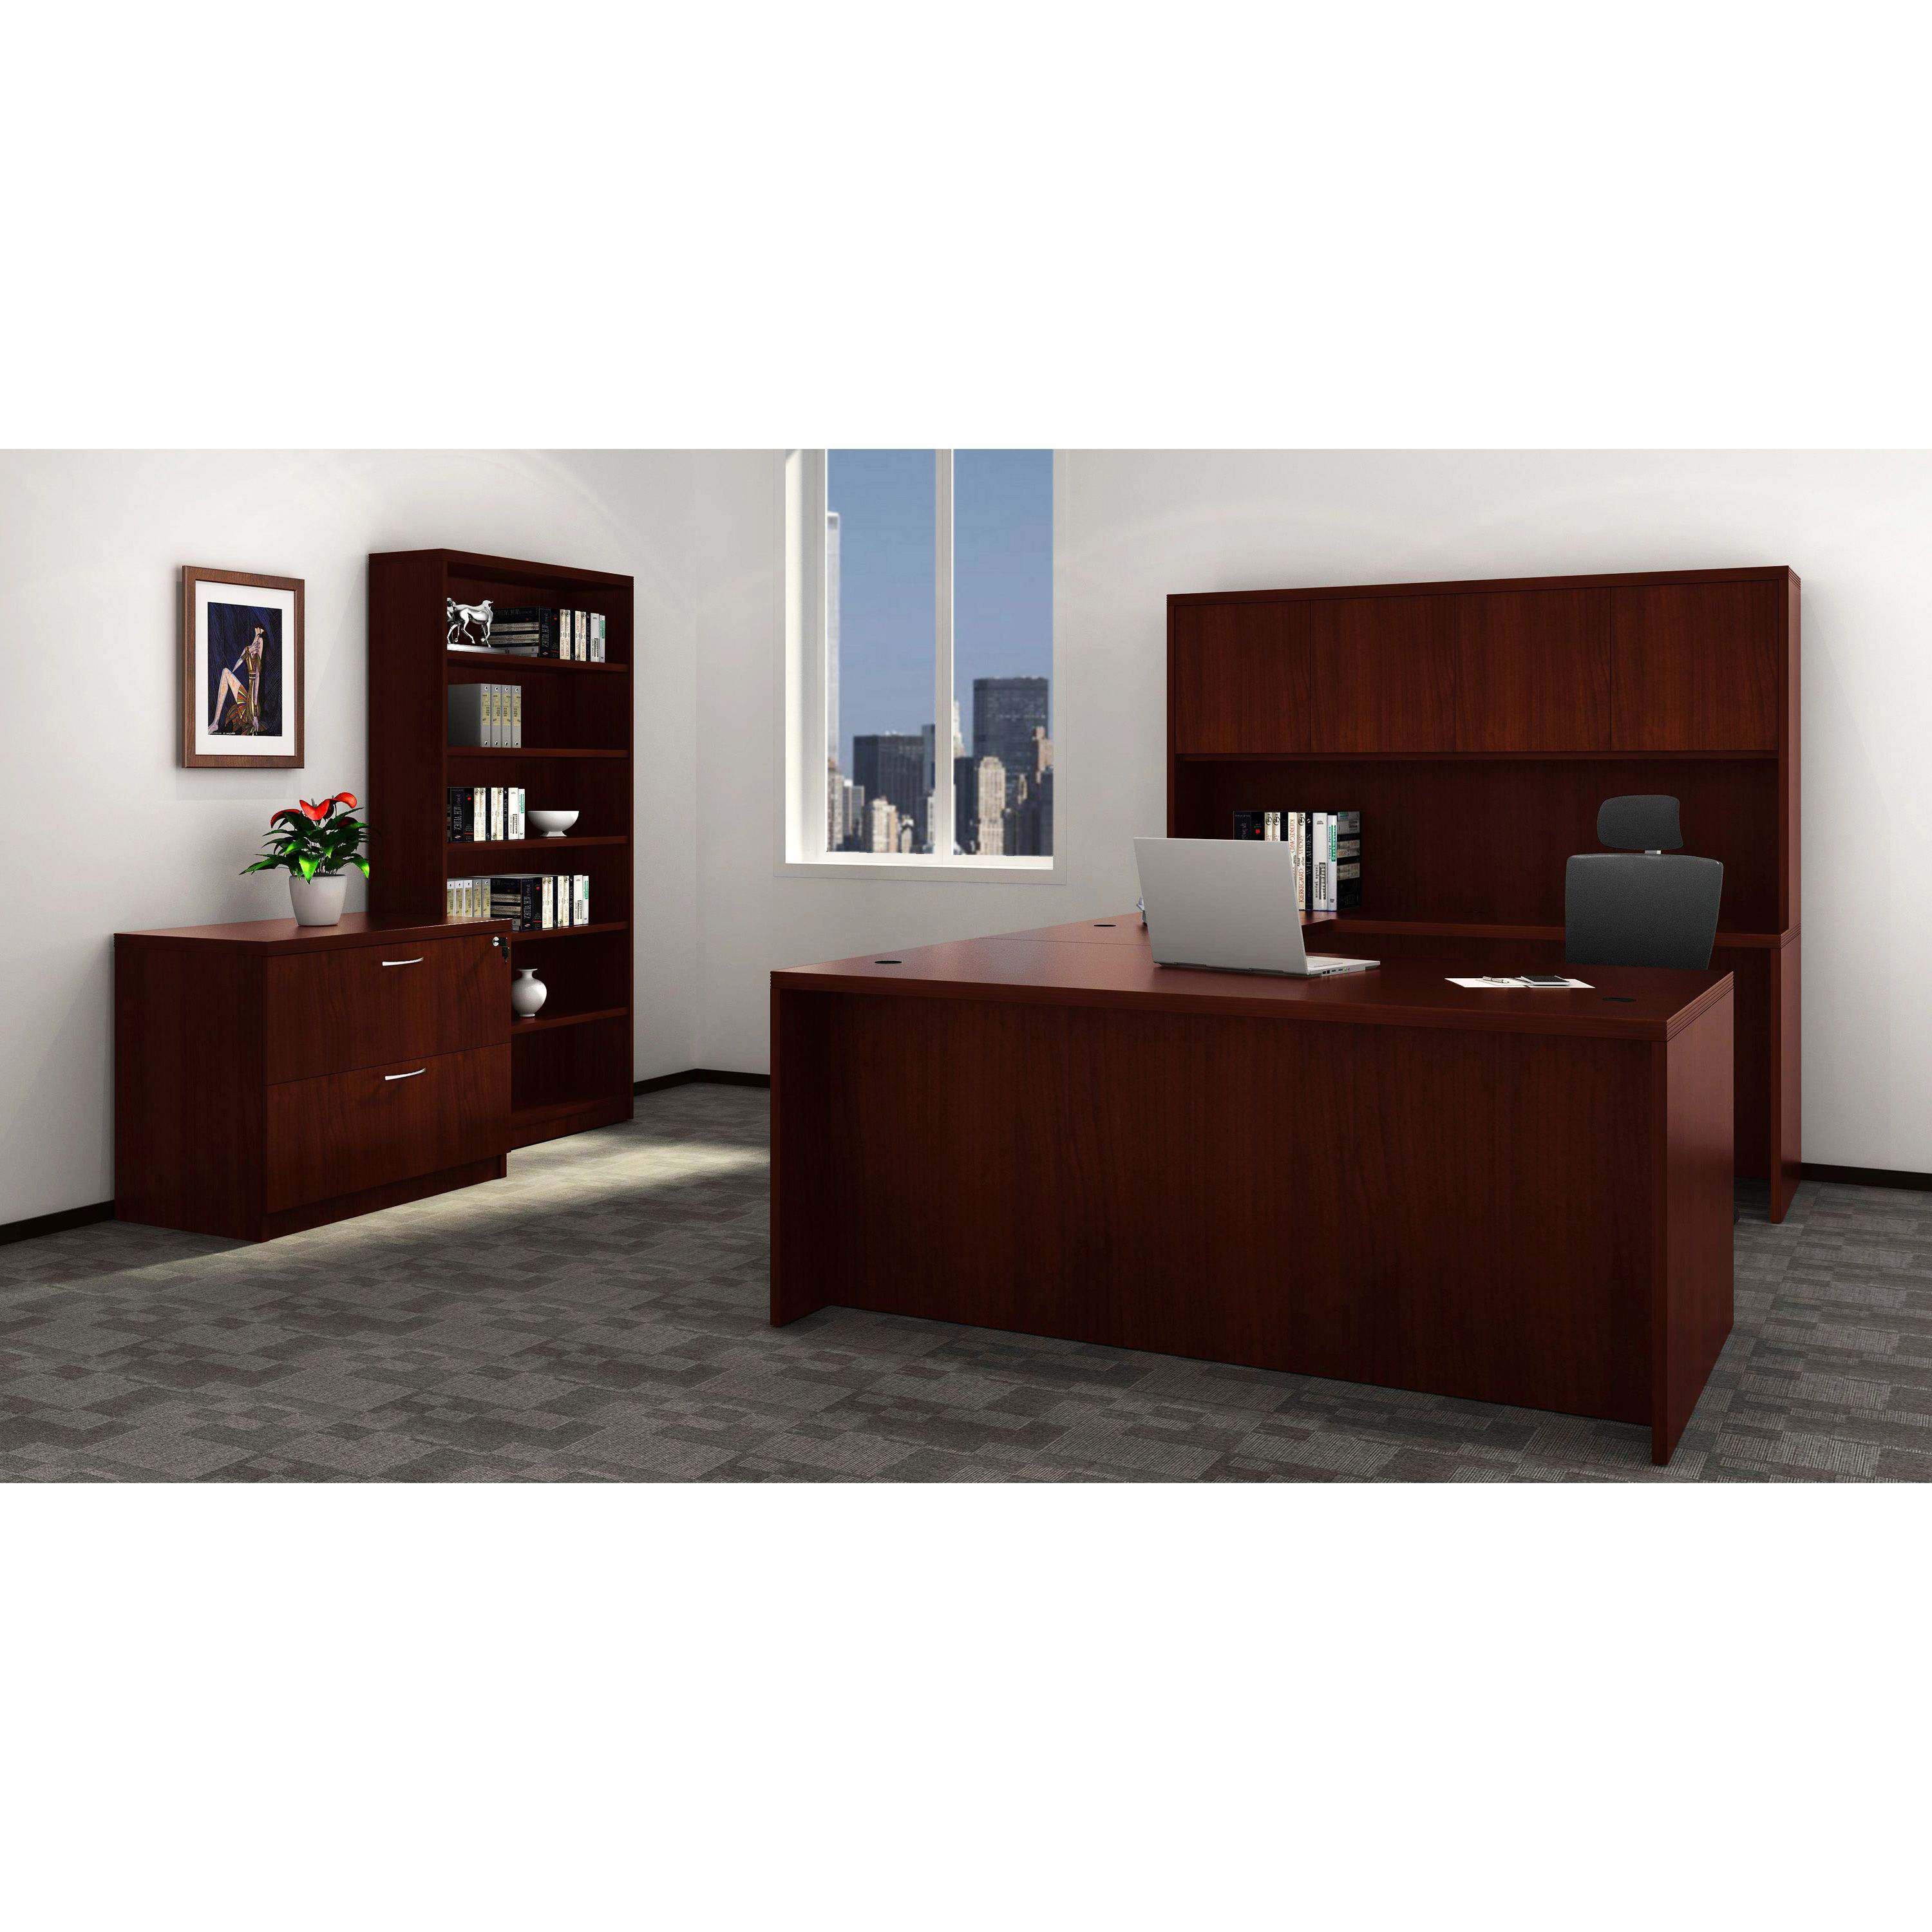 One Of Our Favorite Series Is The Lorell Chateau Series, Which Offers  Contemporary Laminate Office Furniture With A Durable Design And Multiple  ...